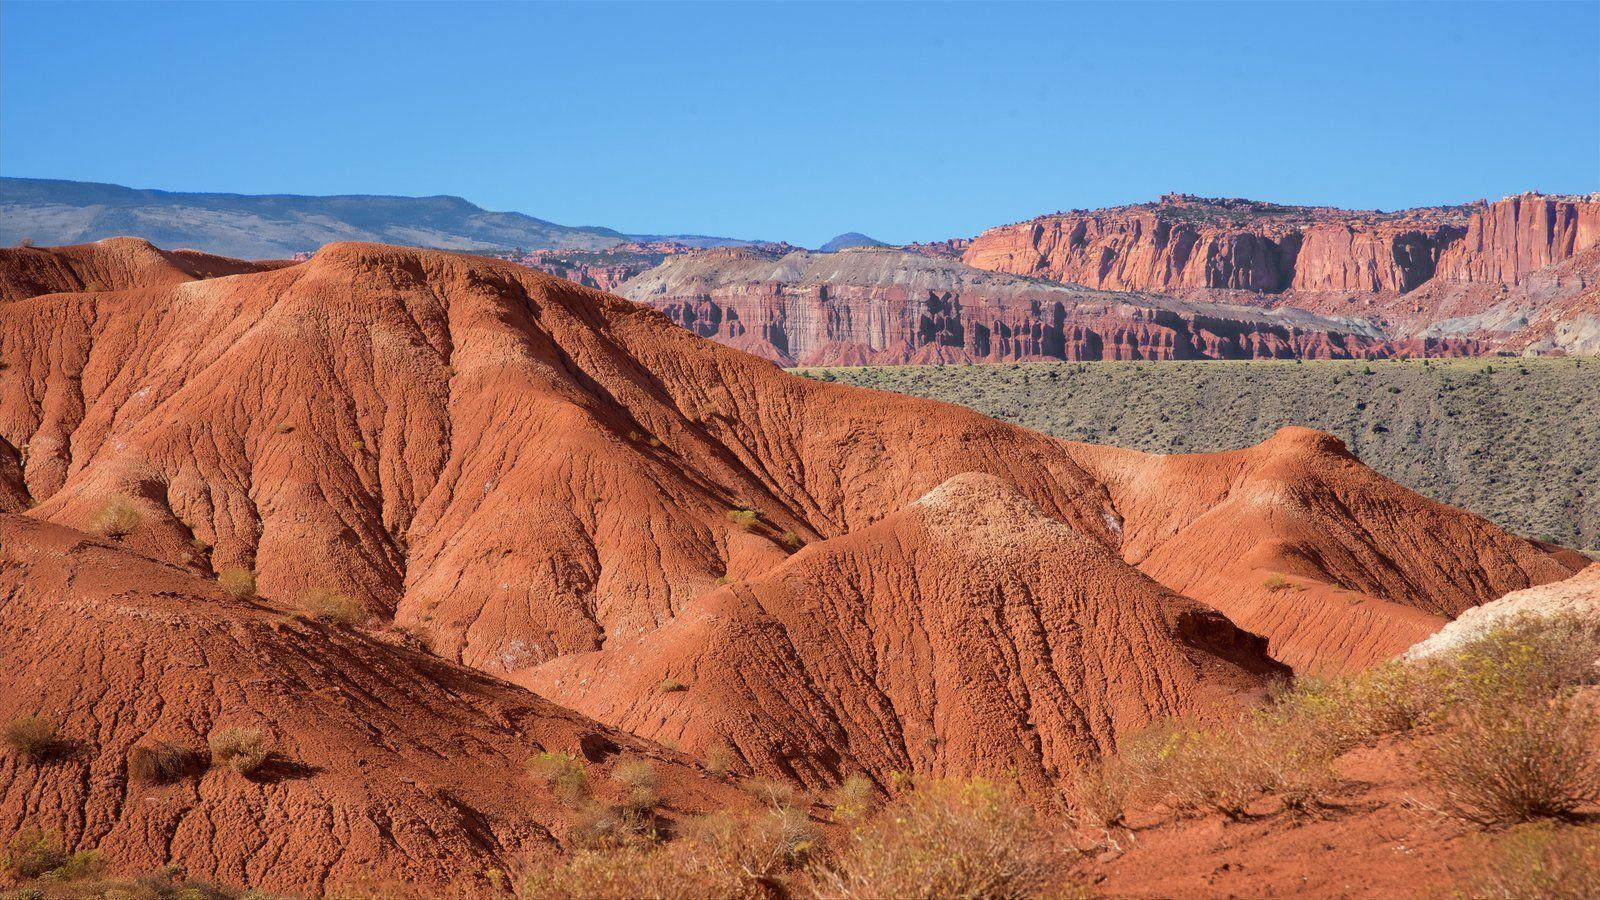 Capitol Reef National Park Pictures: View Photos & Image of